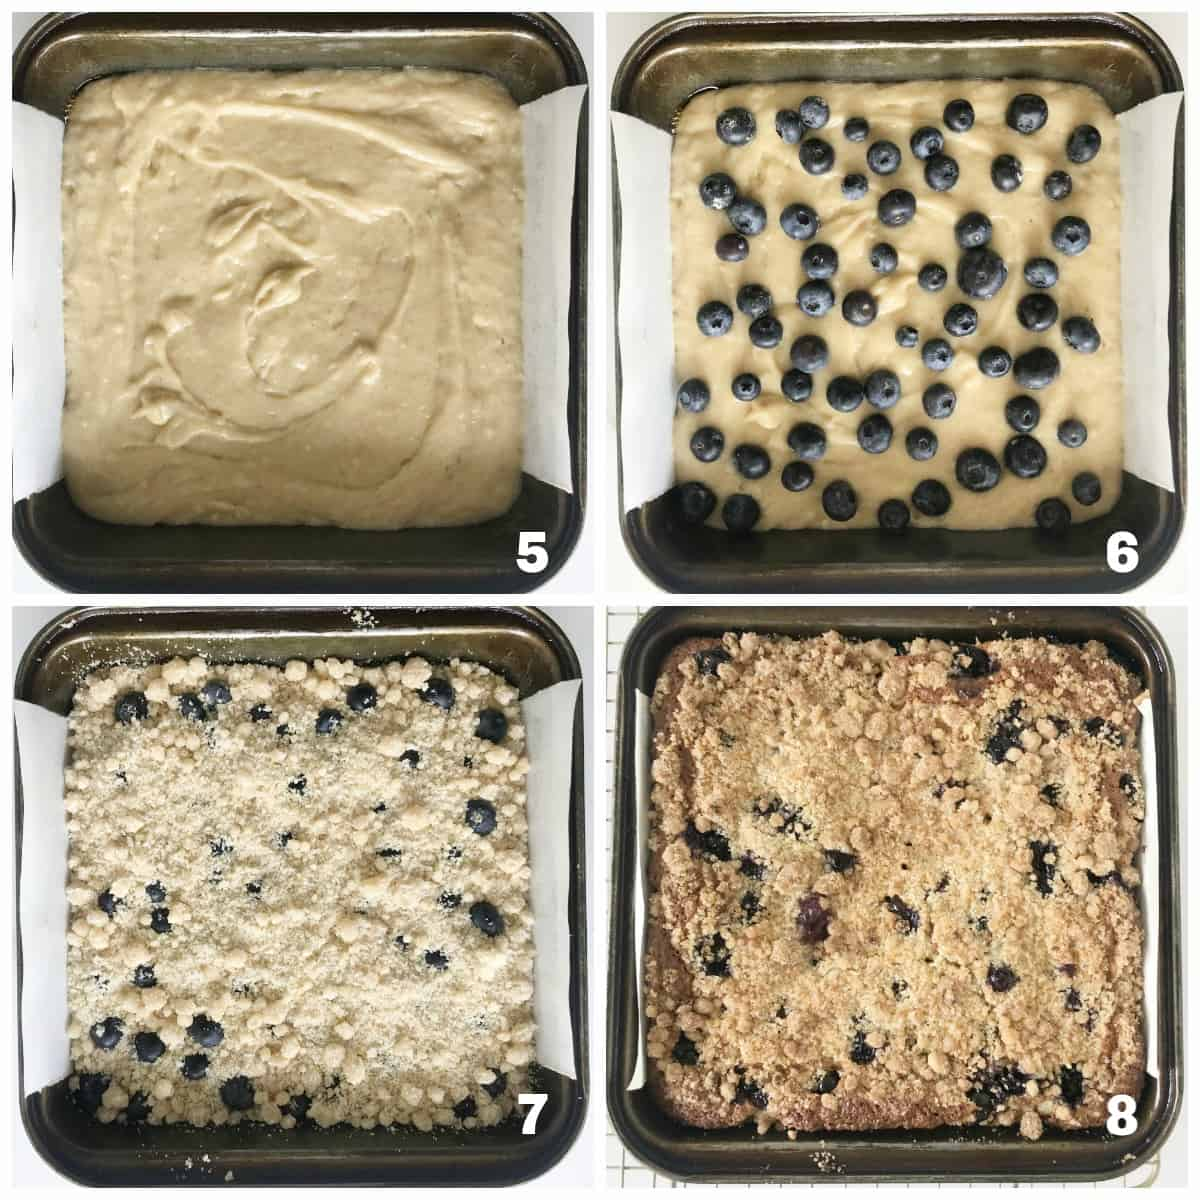 Image collage of metal pan with blueberry crumb cake process, from raw to baked